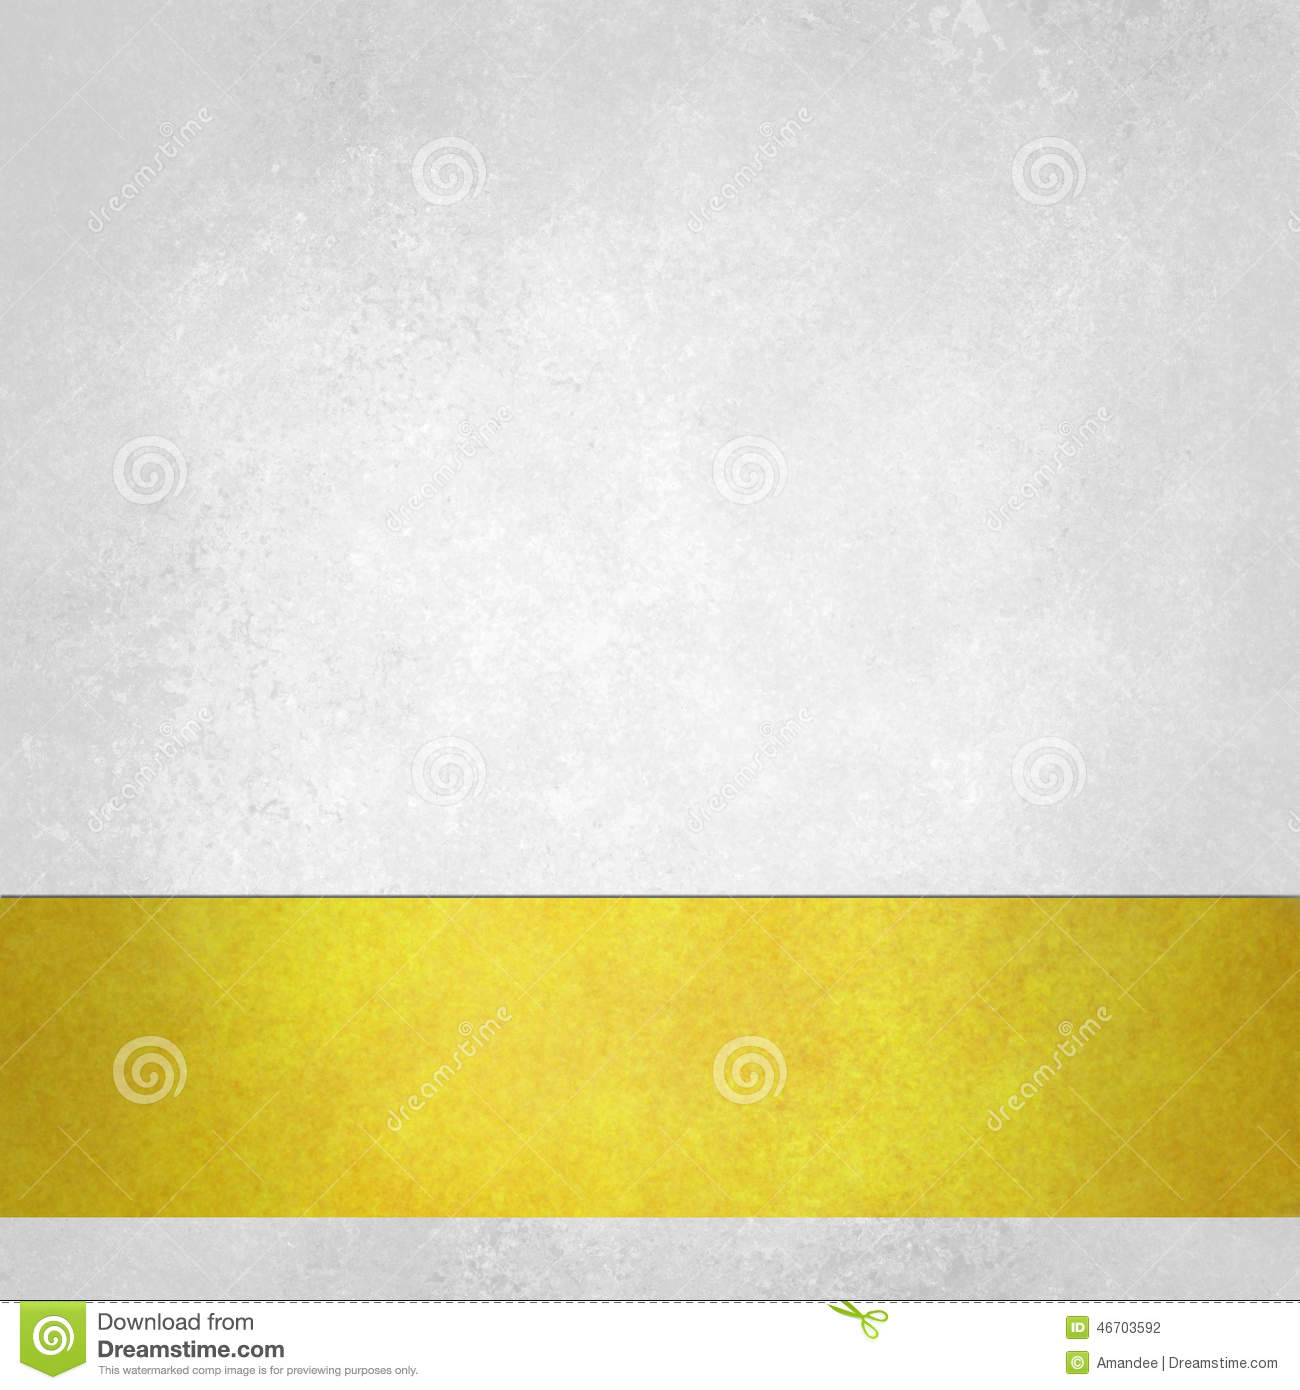 Pure white background with gold footer stripe on bottom border, old white paper vintage background texture